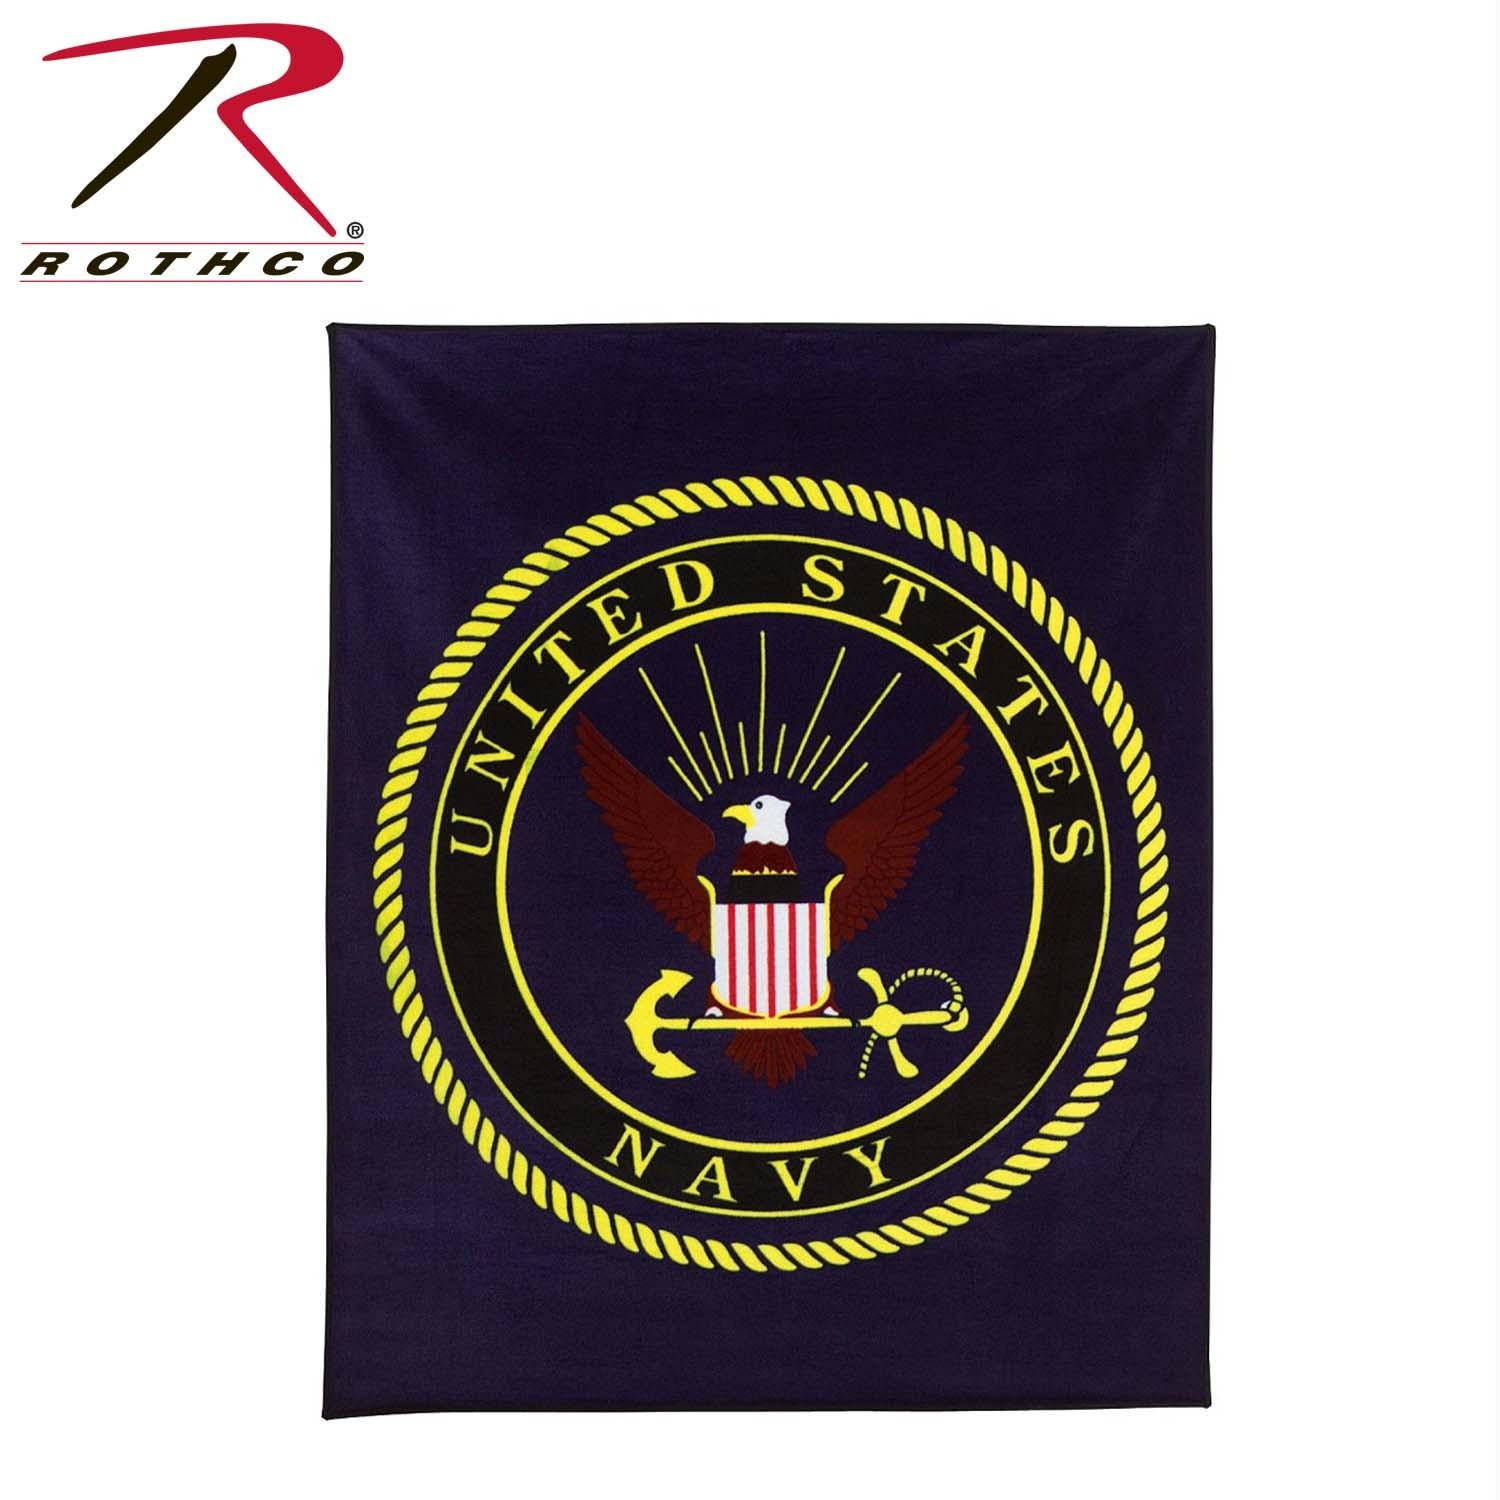 Rothco Military Insignia Fleece Blankets - Navy